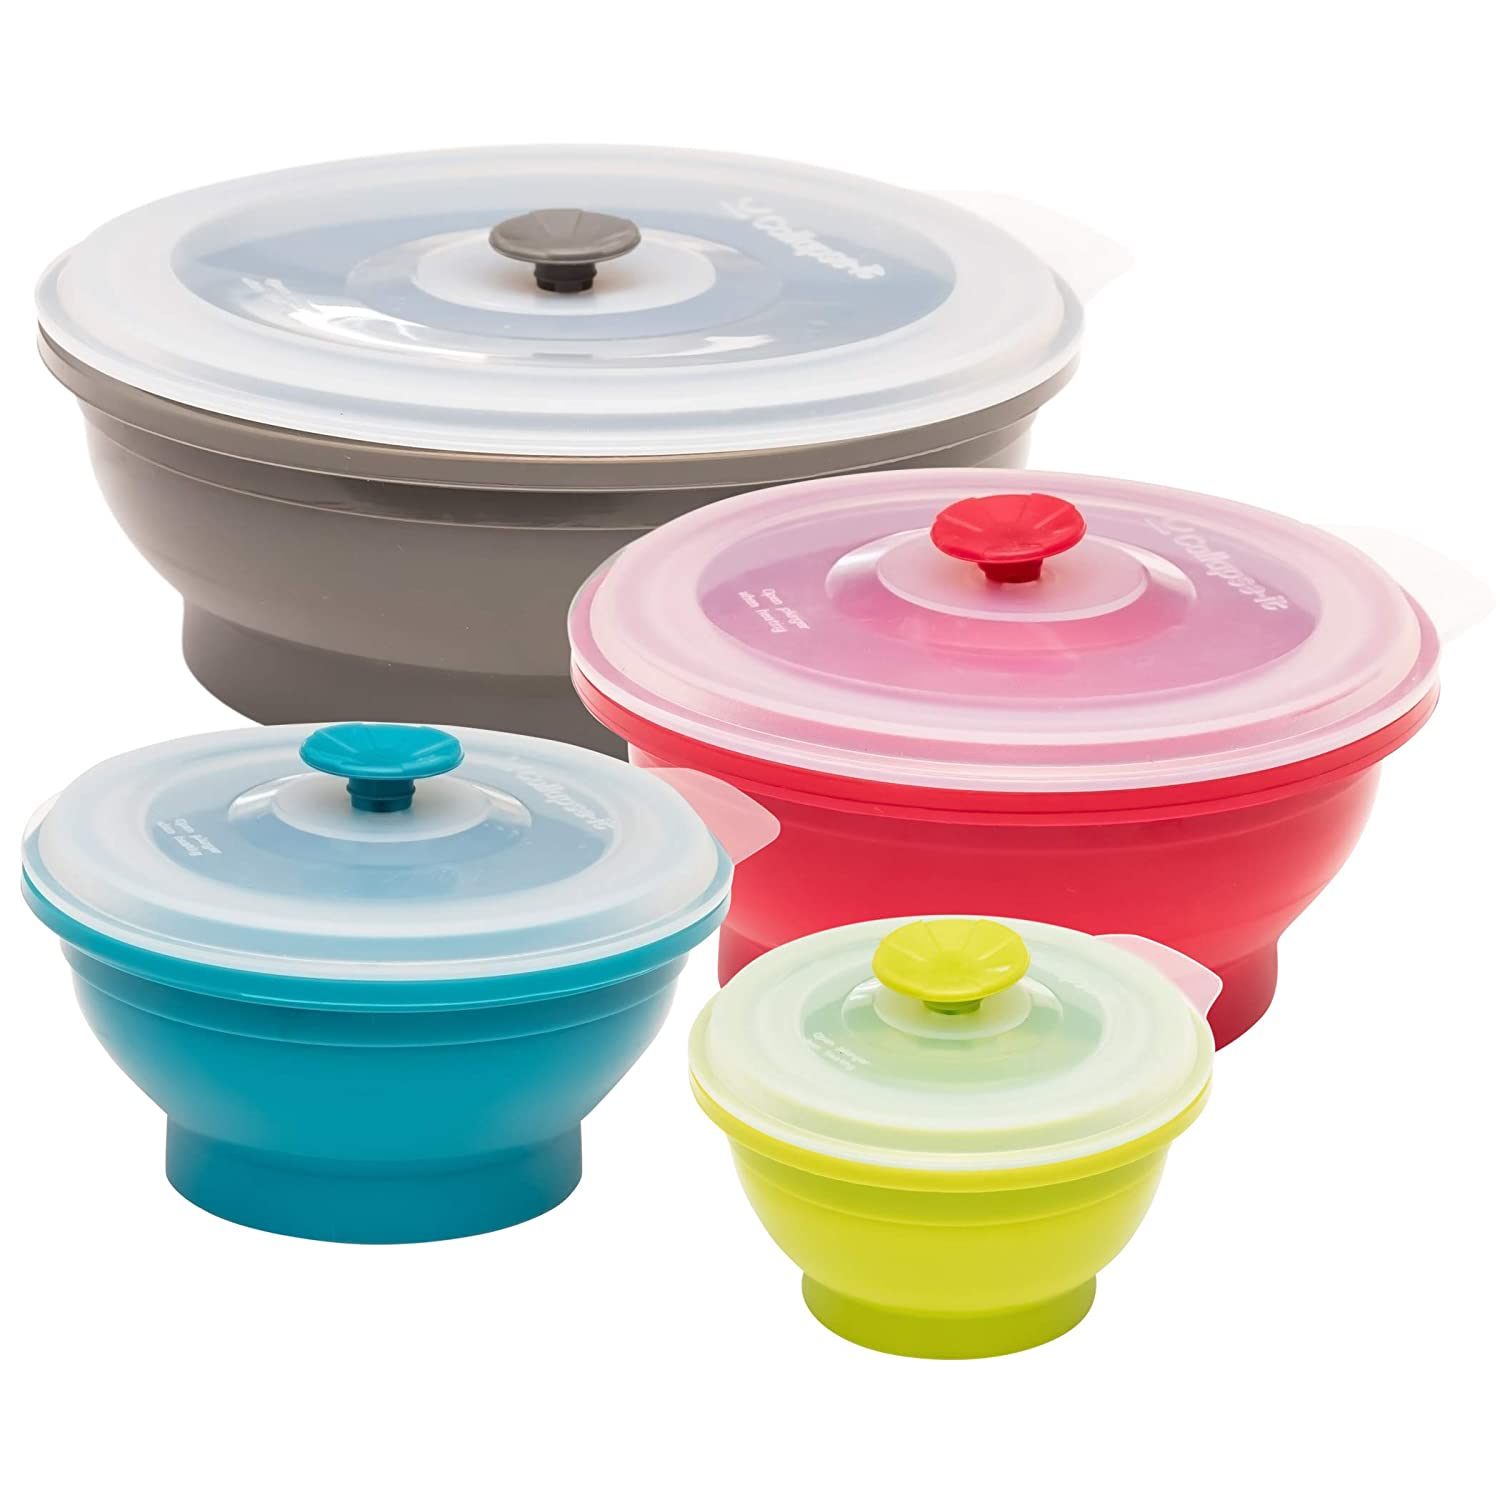 Collapse-it Silicone Food Storage Containers - BPA Free Airtight Silicone Lids, 4 Piece Set of 6-Cup, 4-Cup, 2-Cup, 1-Cup Collapsible Lunch Box Containers - Oven, Microwave, Freezer Safe